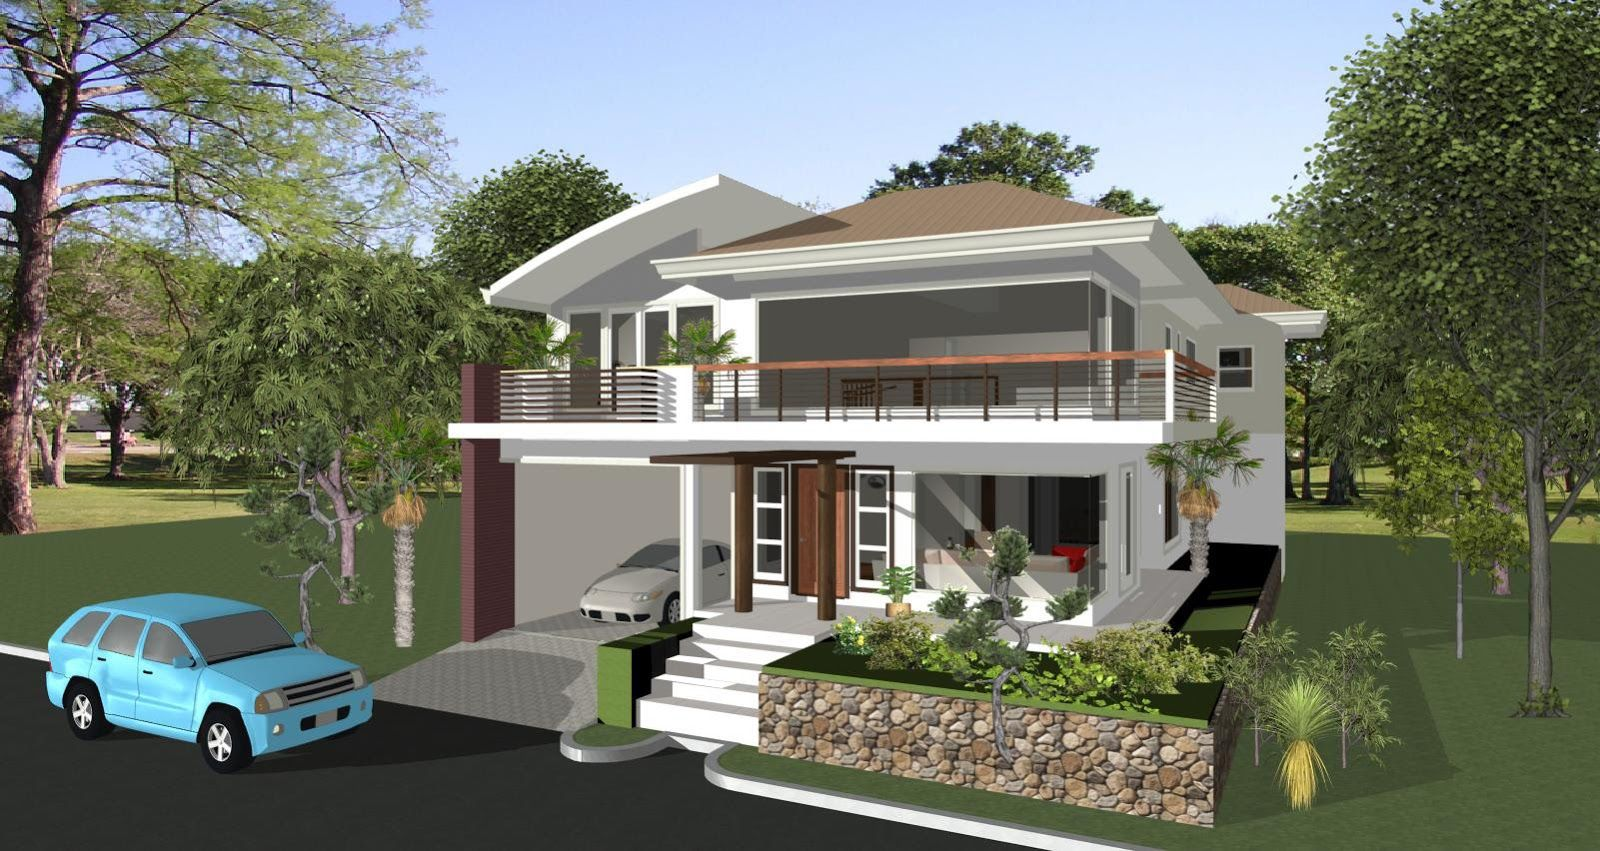 house designs iloilo philippine home designs philippines house ... on tropical home design plans, efficient home design plans, traditional home design plans, best small house design plans, futuristic home design plans,